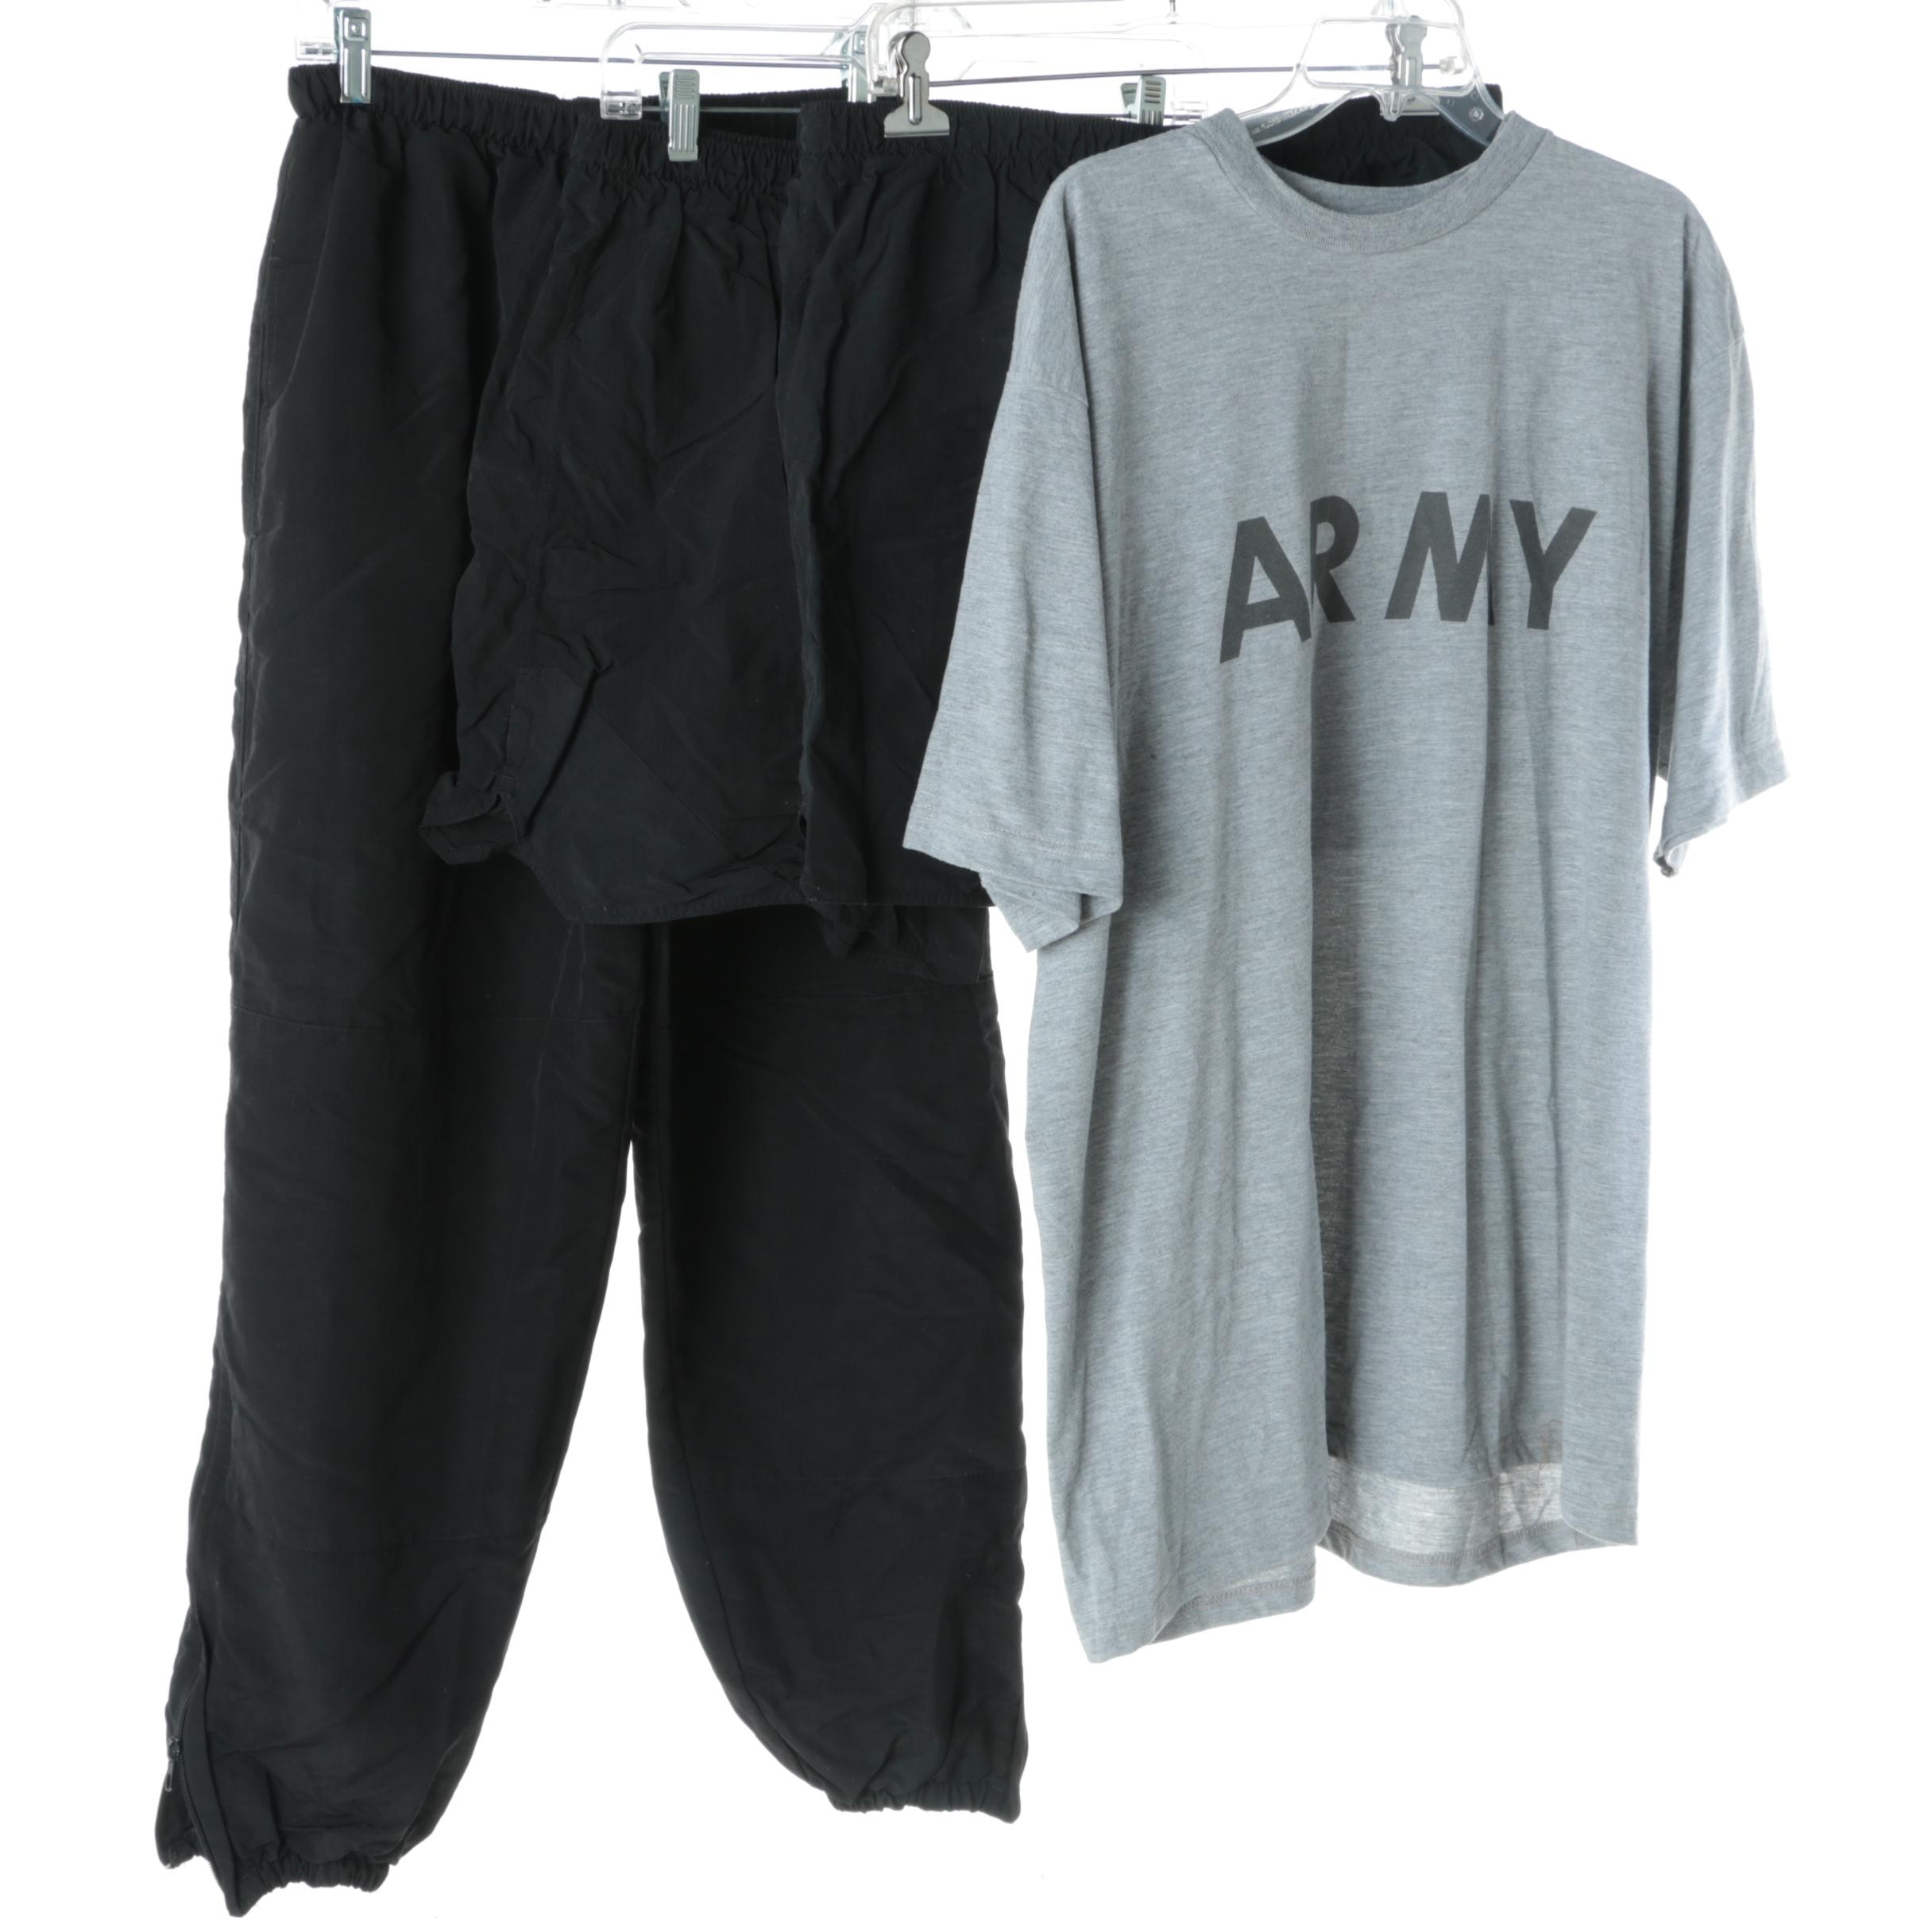 Men's Military Fitness Clothing